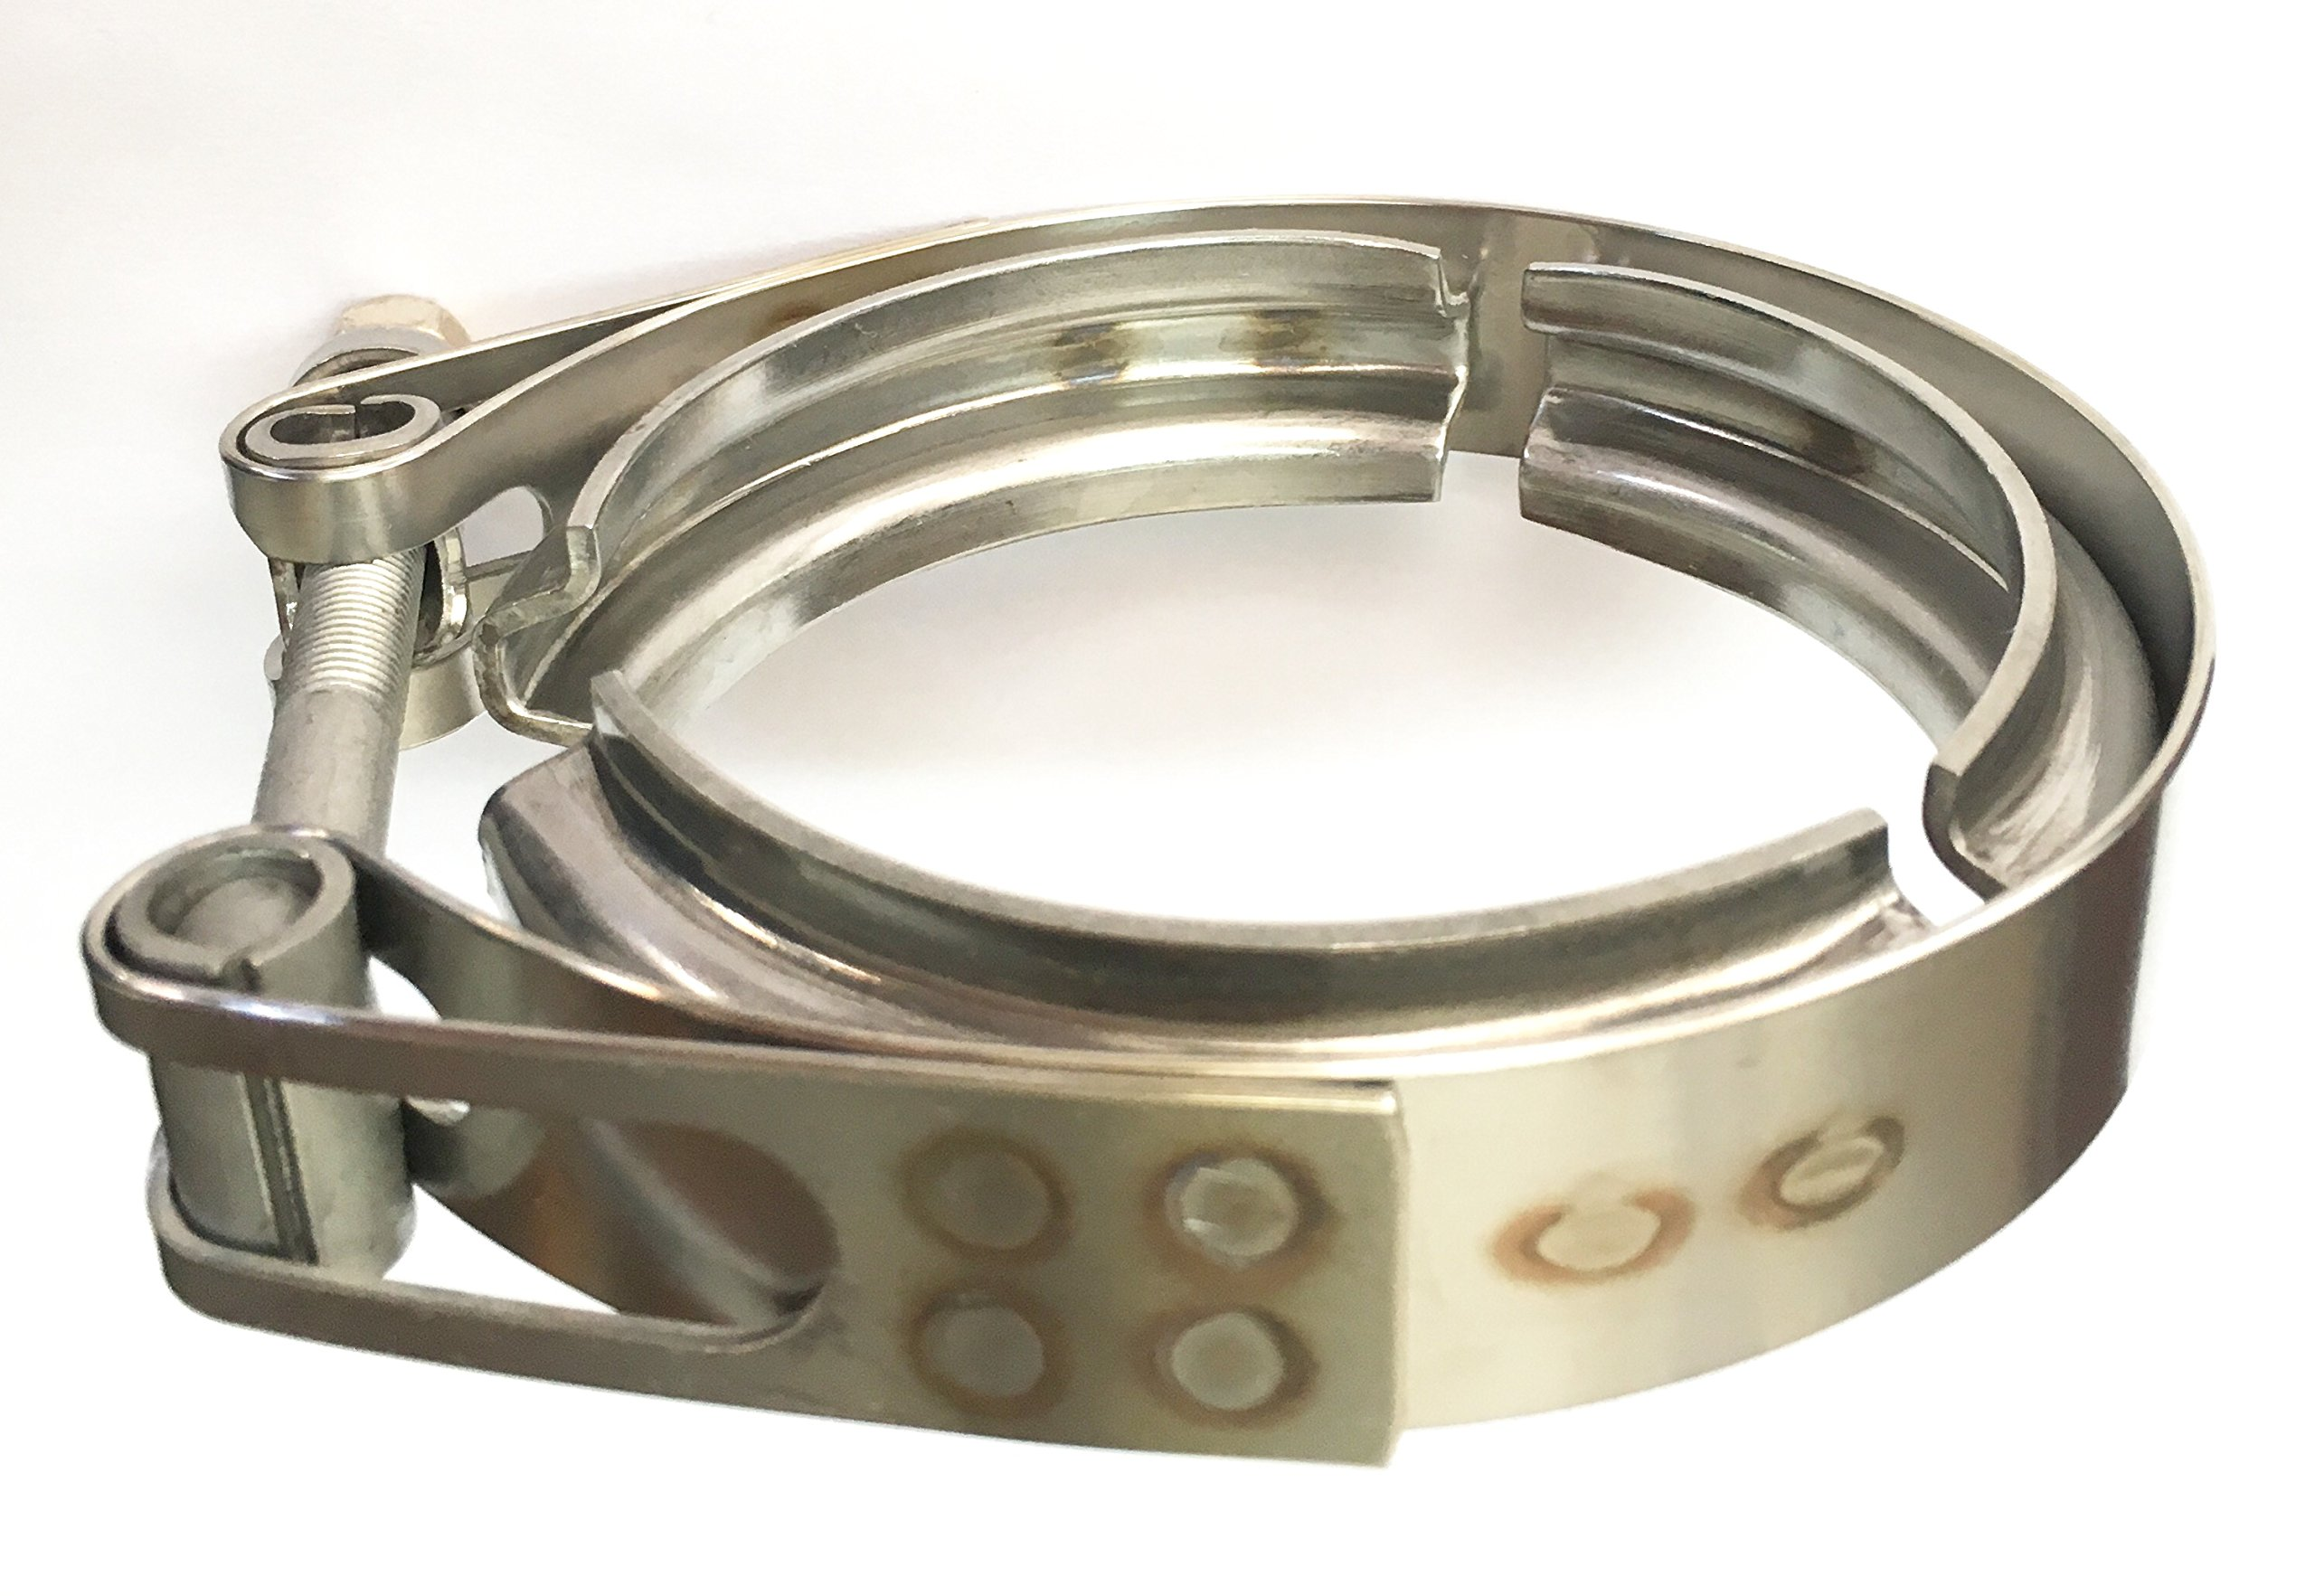 Ticon Industries - 3'' Stainless Steel V-Band Clamp (qty1) - Heavy Duty Bolt - 119-07600-0000